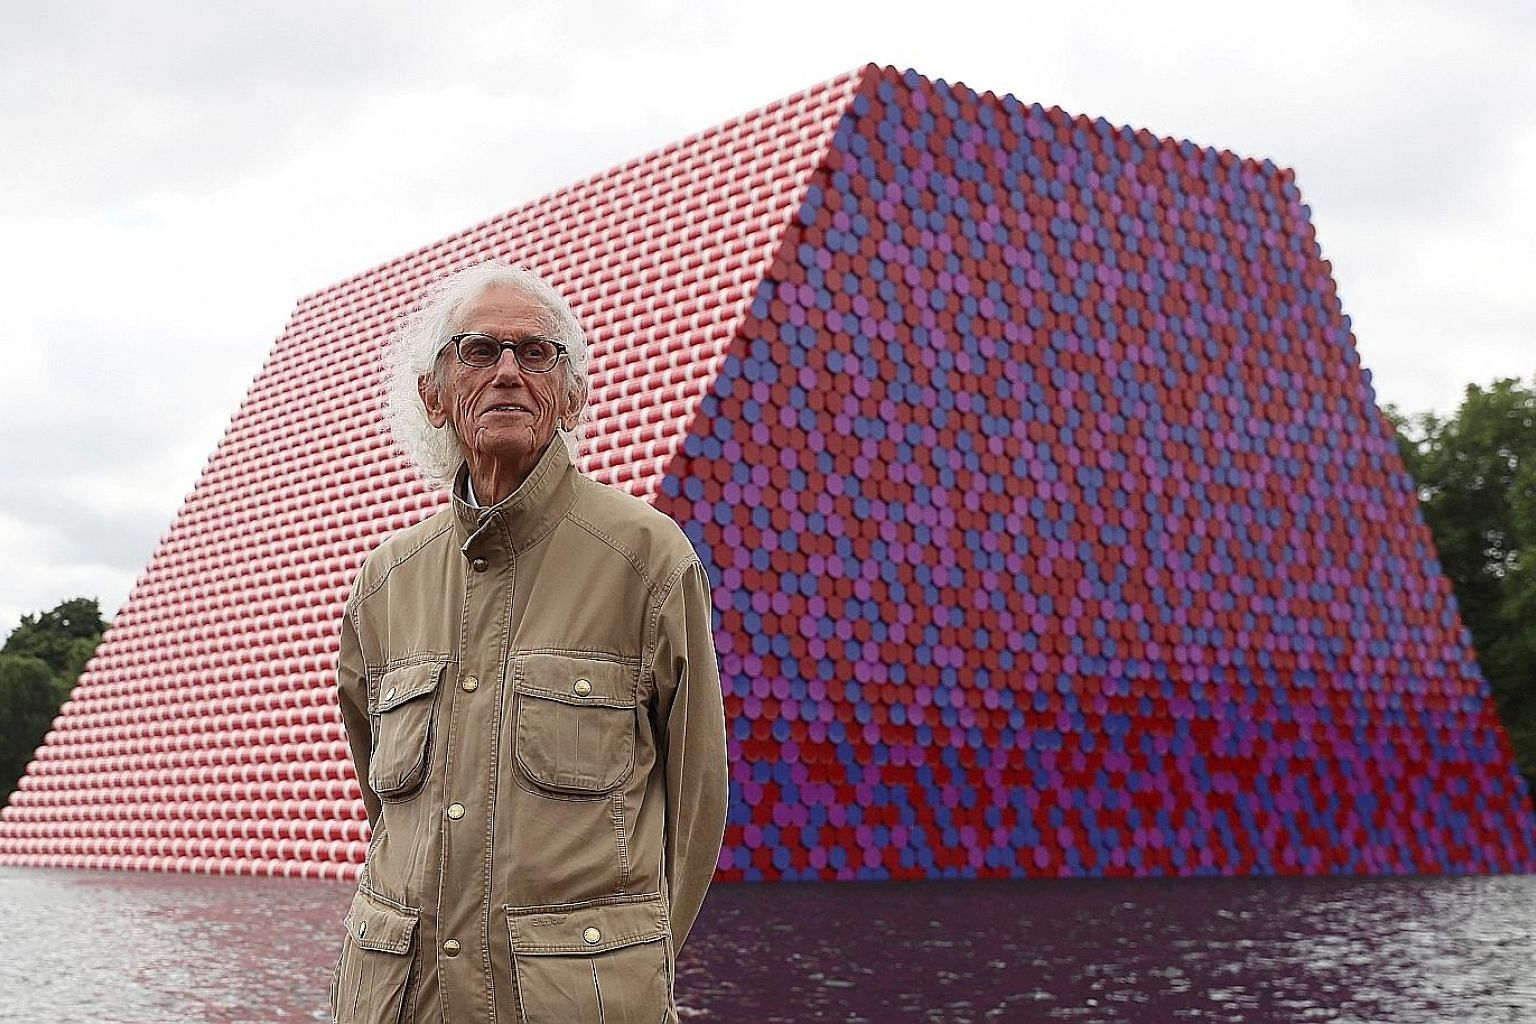 Artist Christo with his artwork Mastaba (left) built on The Serpentine lake in London, in 2018. His grand projects included wrapping the Reichstag in Berlin (above), in 1995.